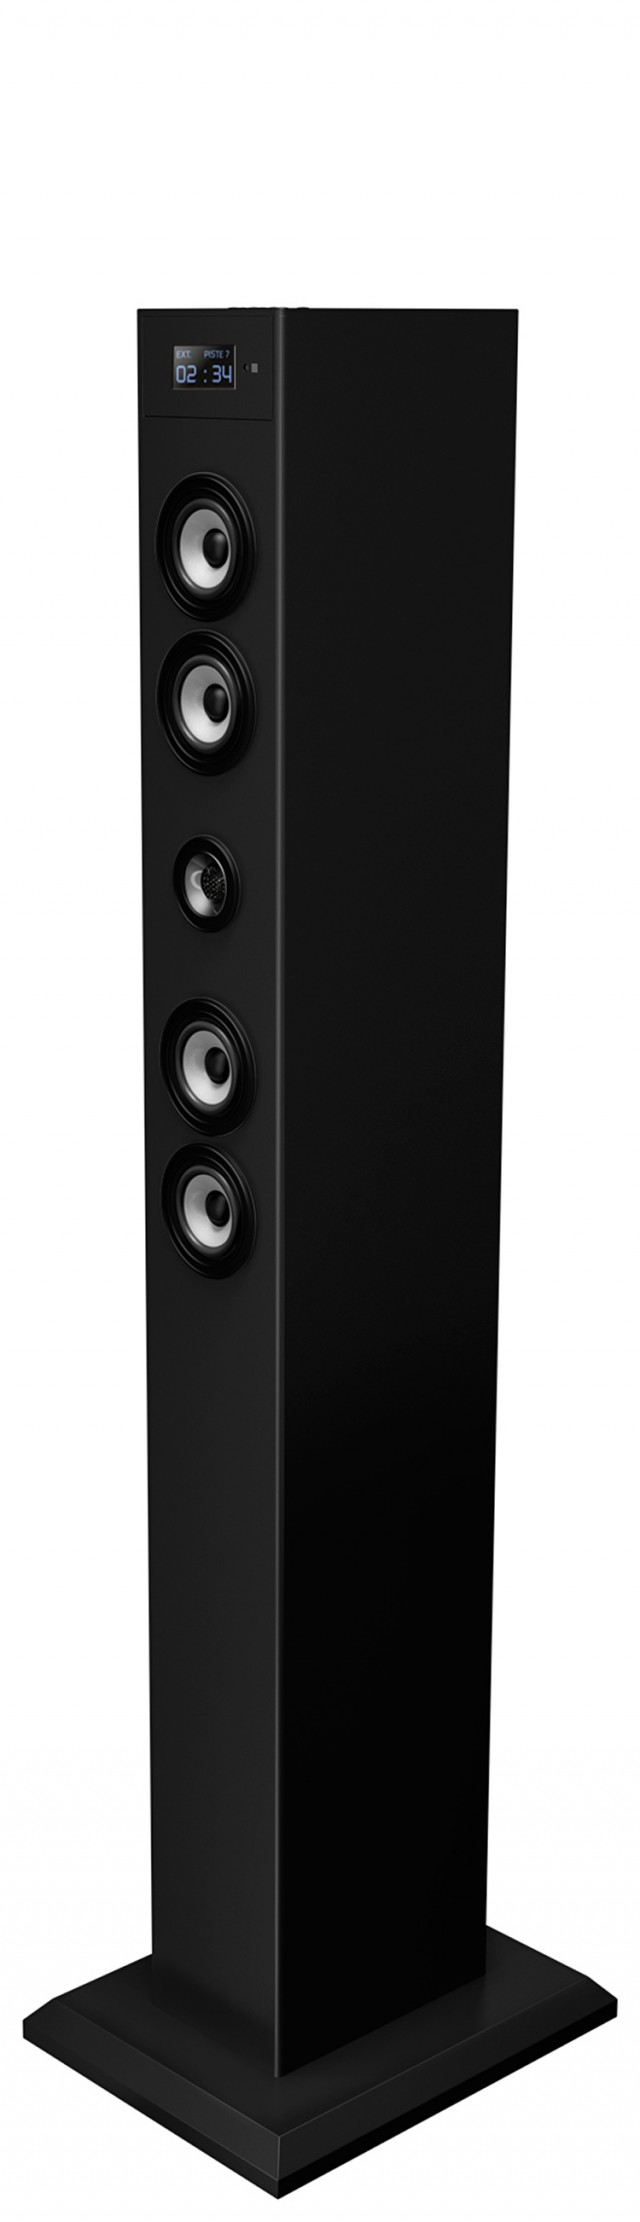 Multimedia tower with adaptador Bluetooth (Black) - Packshot